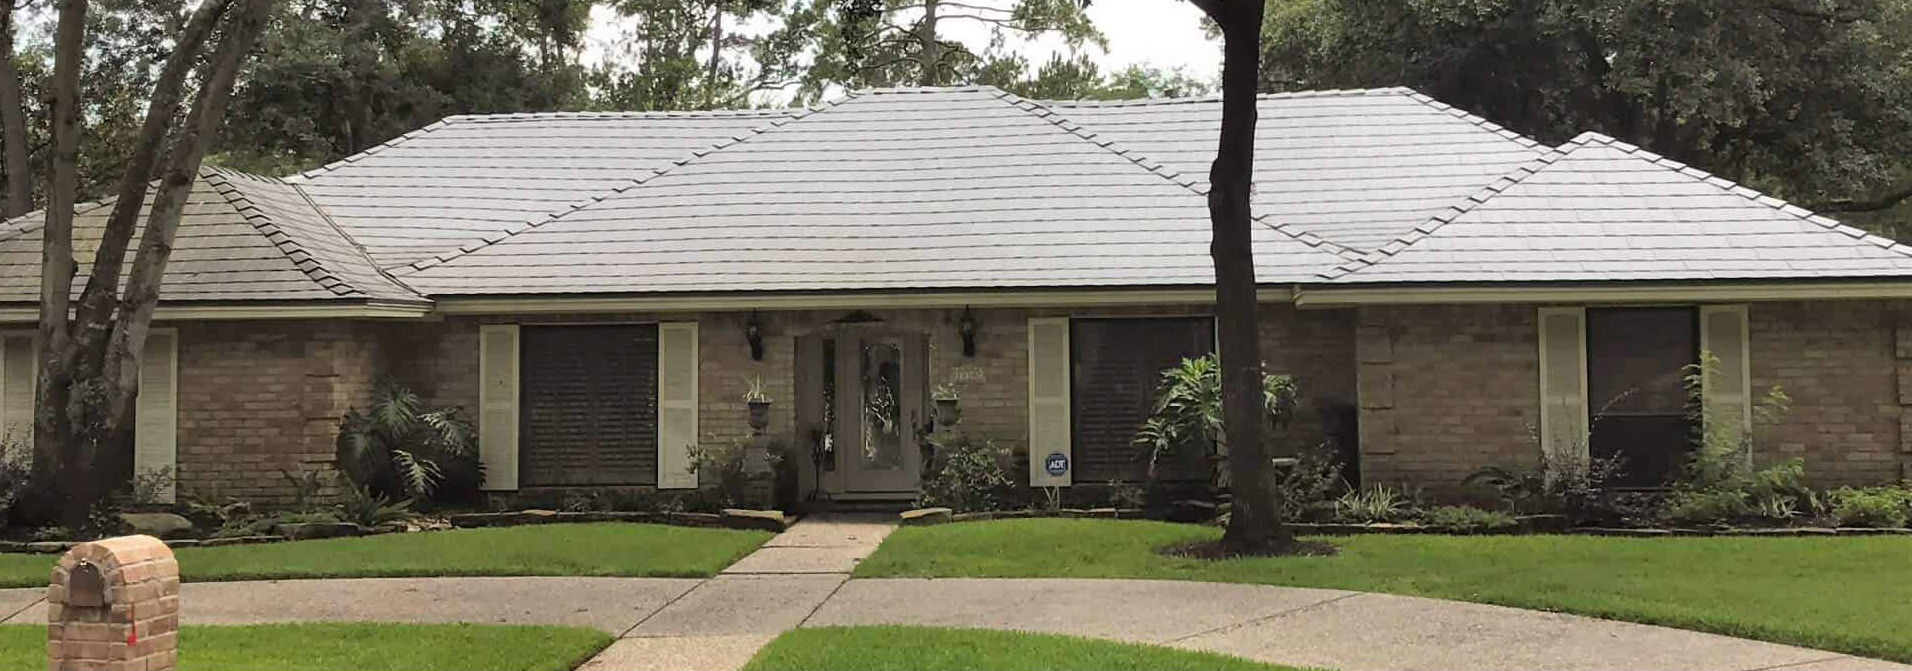 The Woodlands TX Metal Roof Over Shingles Installation